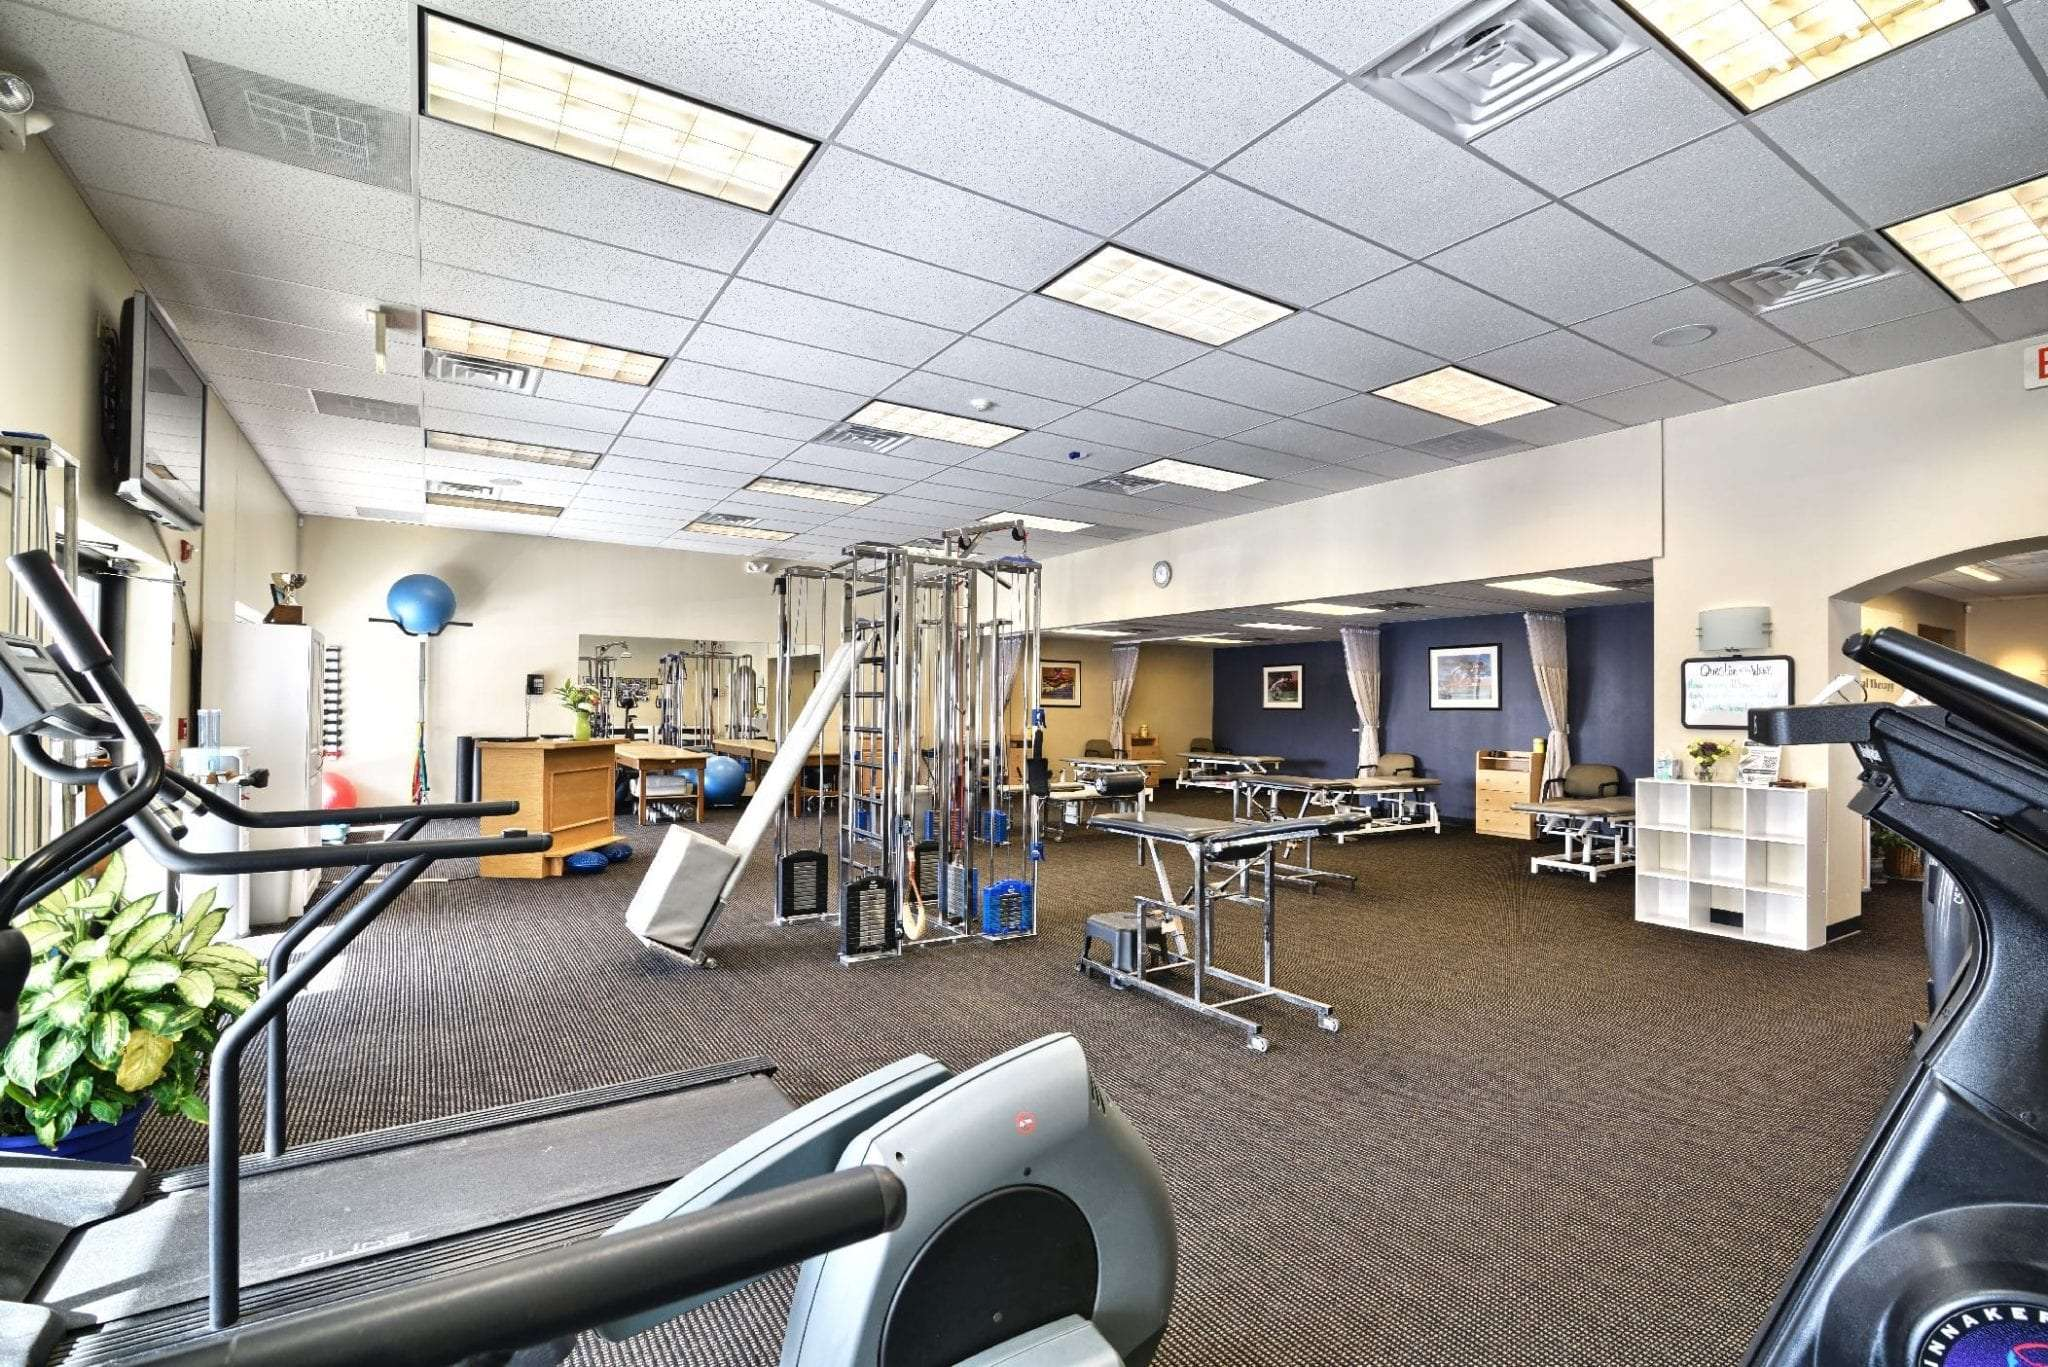 Here is a photo of the interior of our Physical Therapy Clinic in Stratham, New Hampshire. This image shows our clean facility and equipment